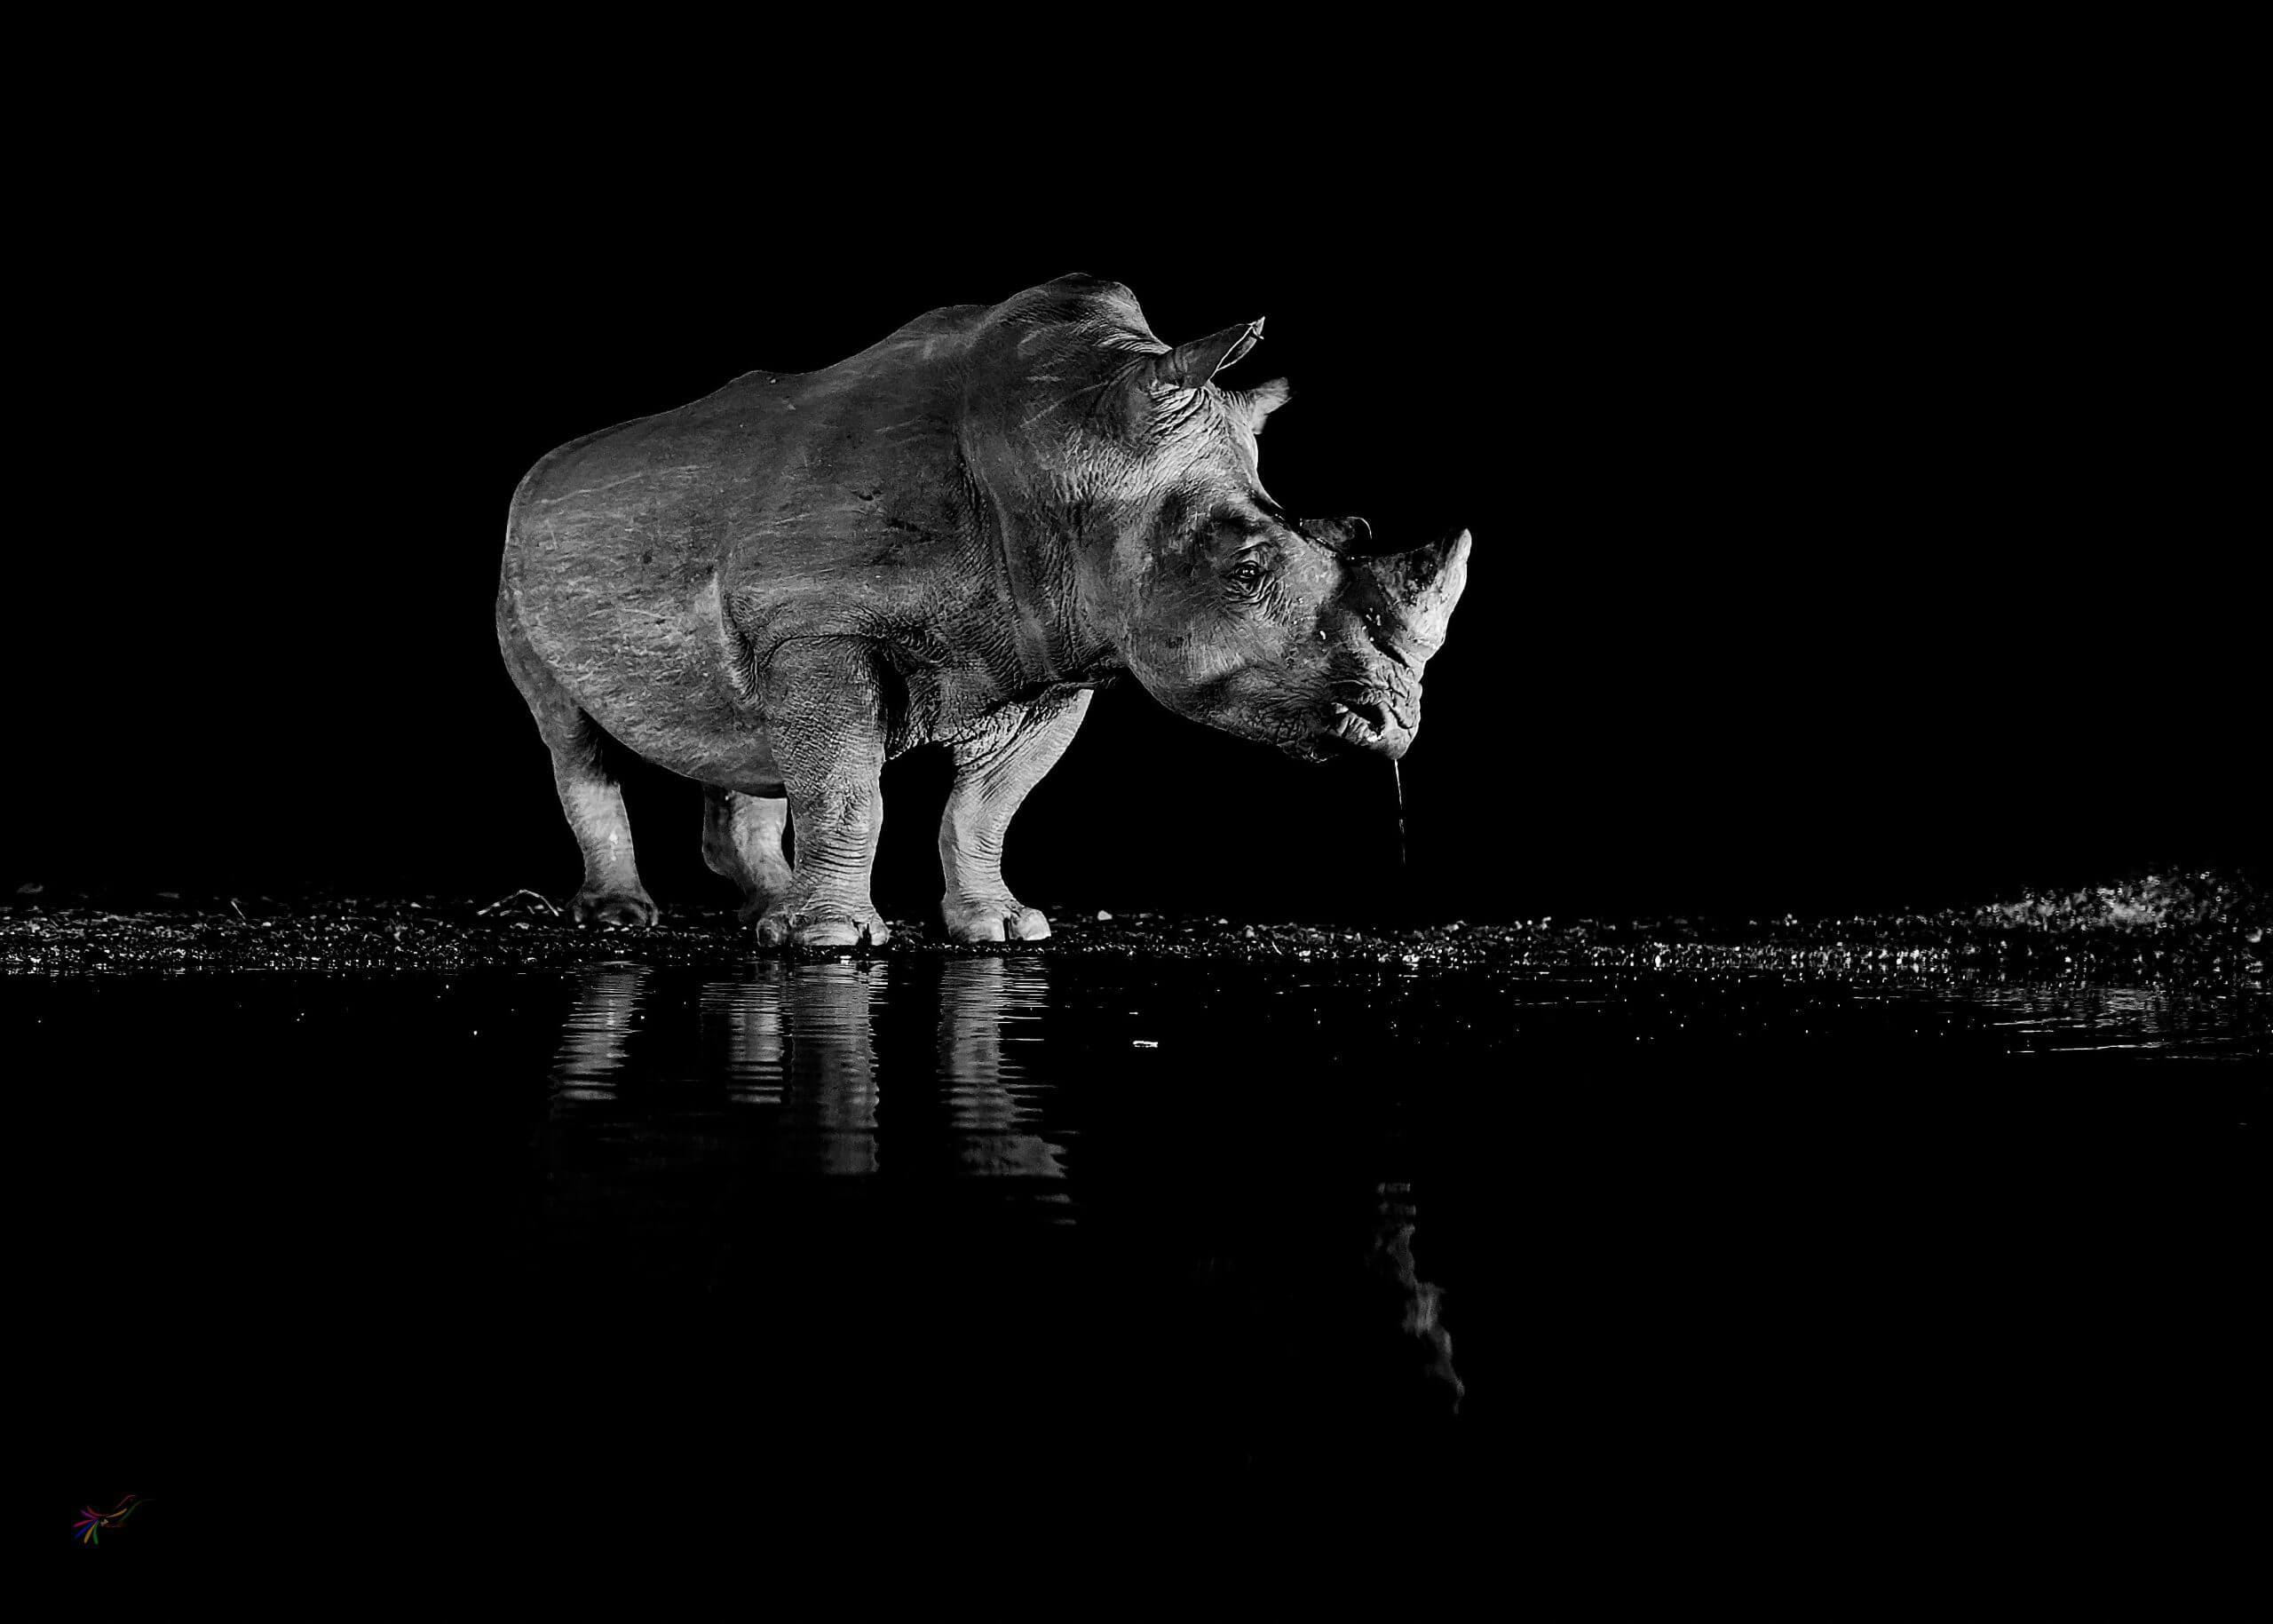 solitary is a black and white image of a white rhino